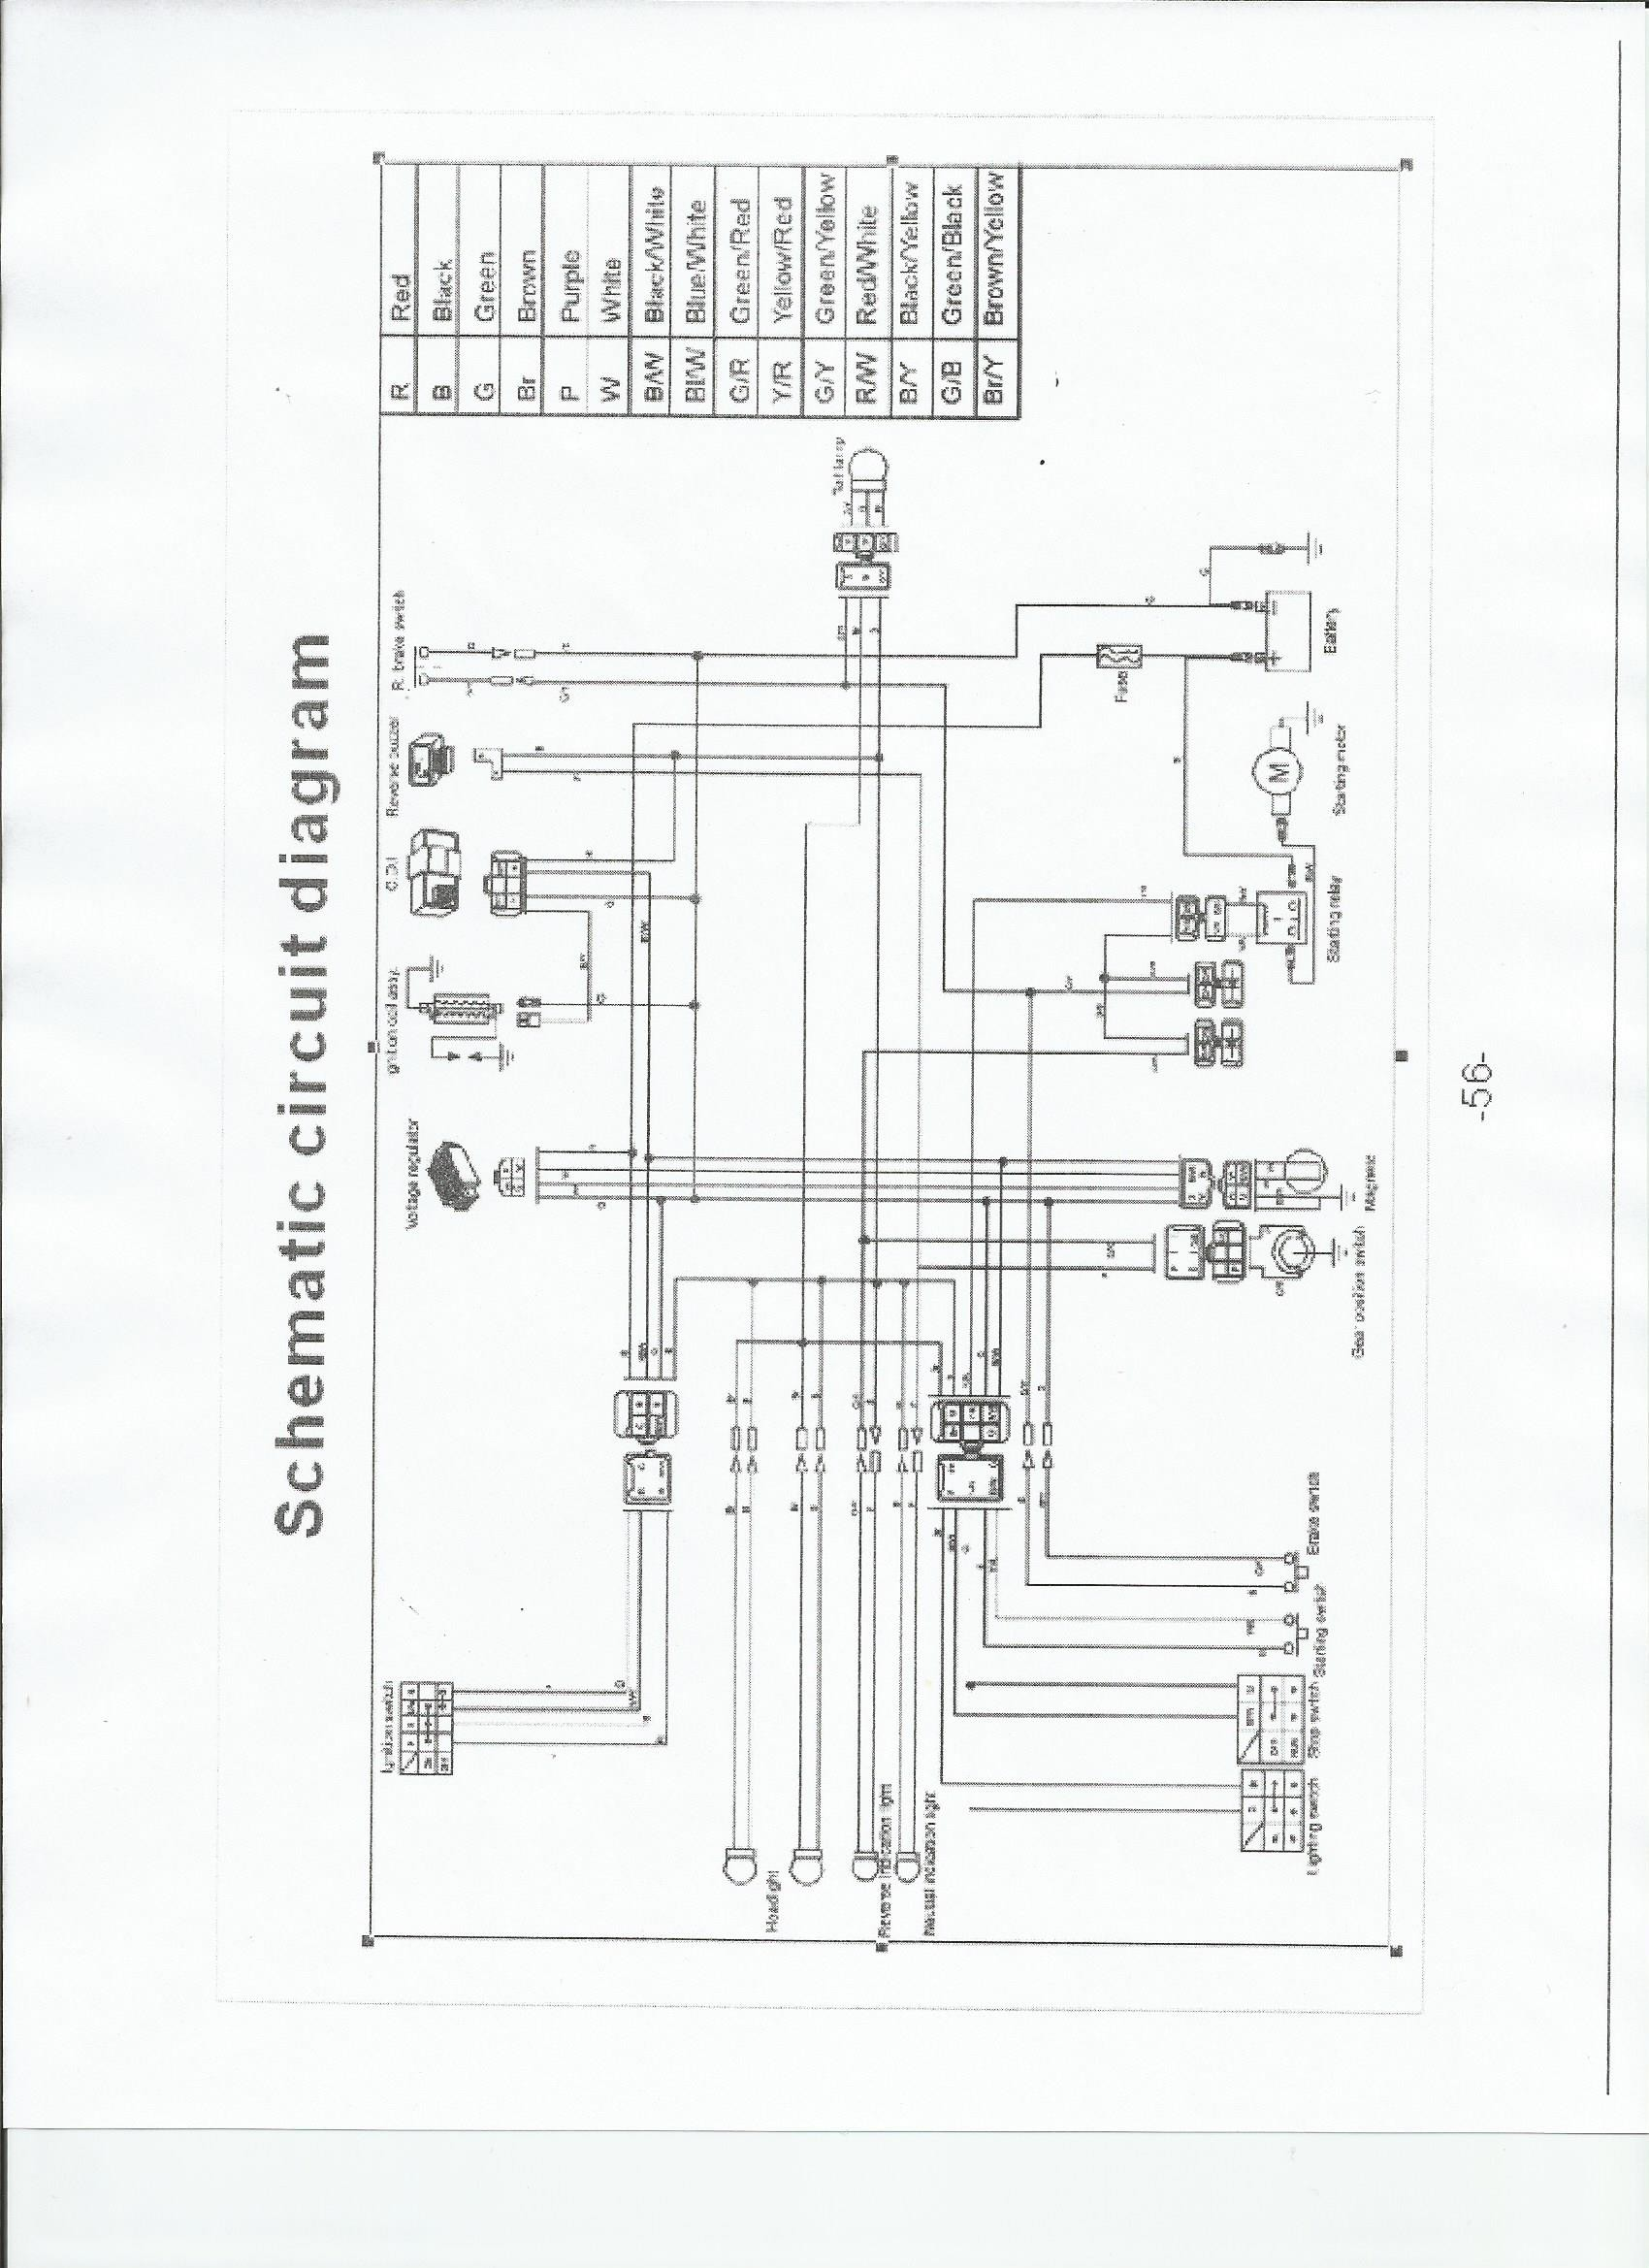 hight resolution of 50cc scooter wiring diagram wiring diagram database chinese scooter tao wiring diagram